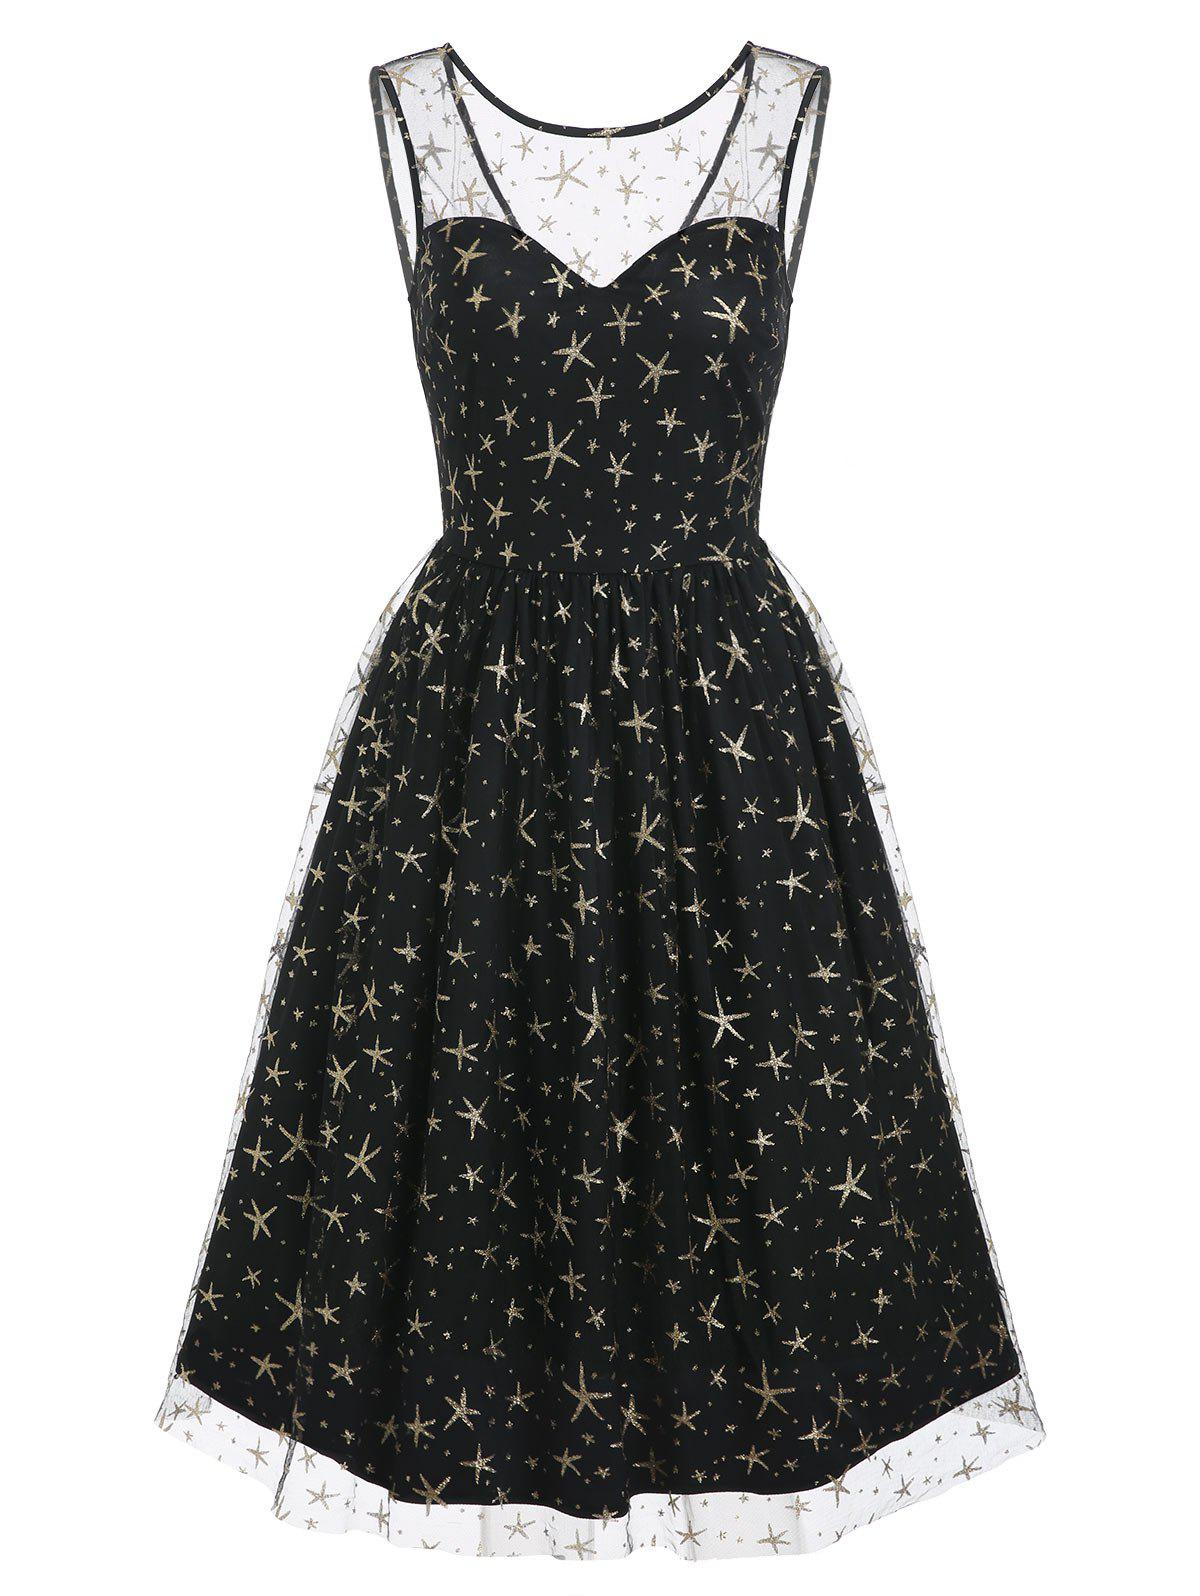 Sequined Sparkly Star Mesh Overlay Sleeveless Dress - BLACK M